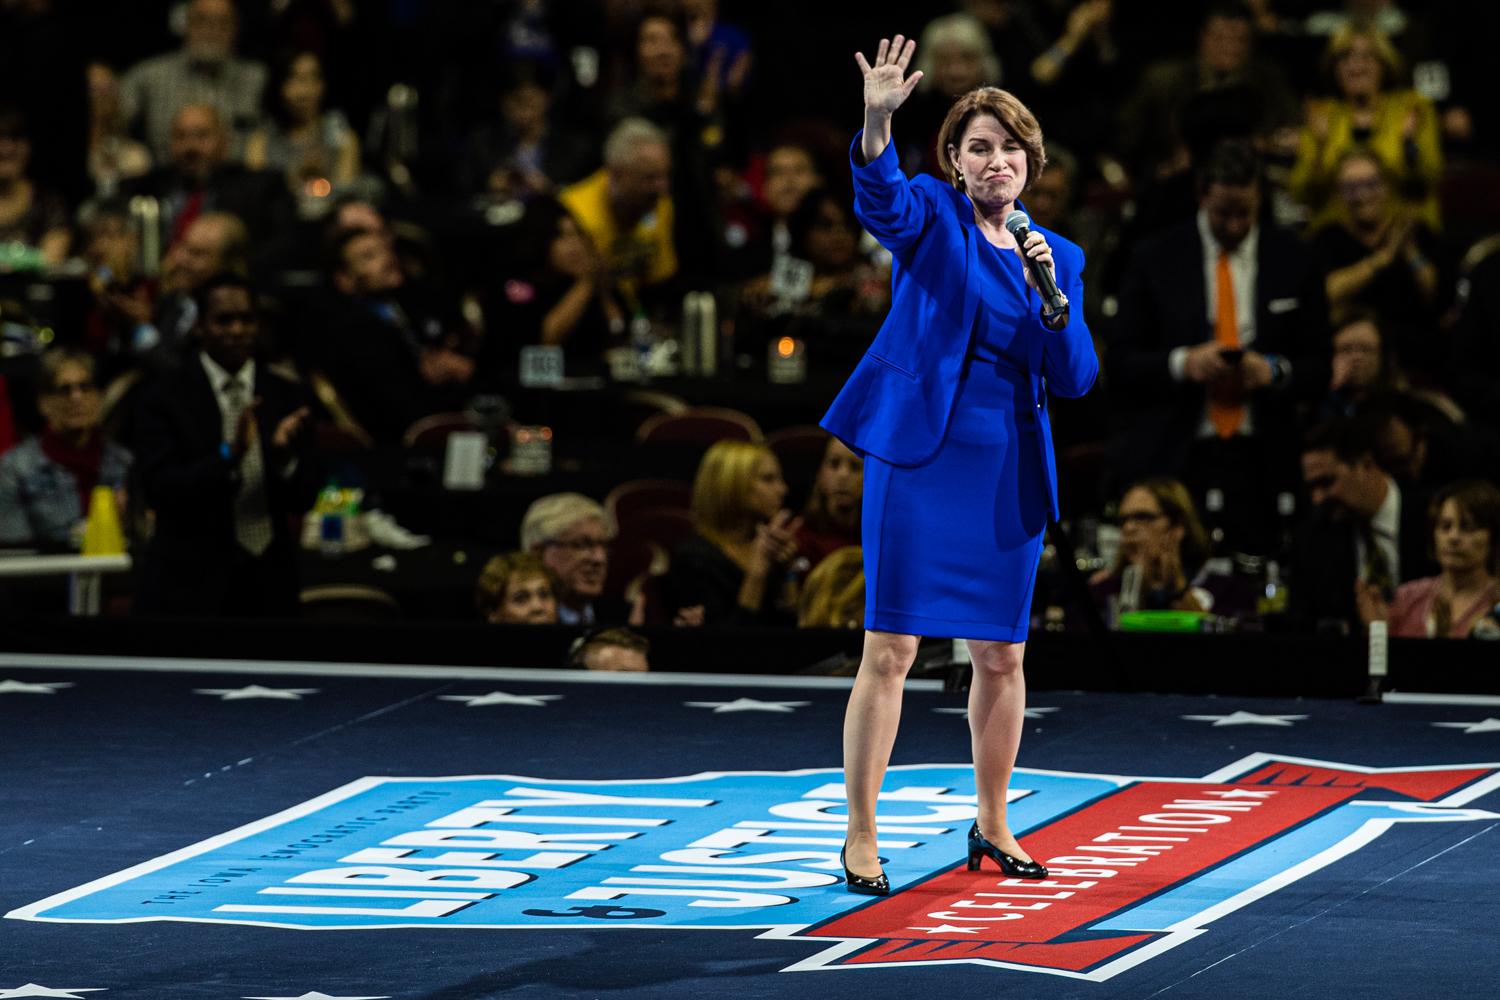 Sen. Amy Klobuchar, D-Minn., speaks during the 2019 Liberty and Justice Celebration at the Wells Fargo Arena in Des Moines on Friday, November 1, 2019.